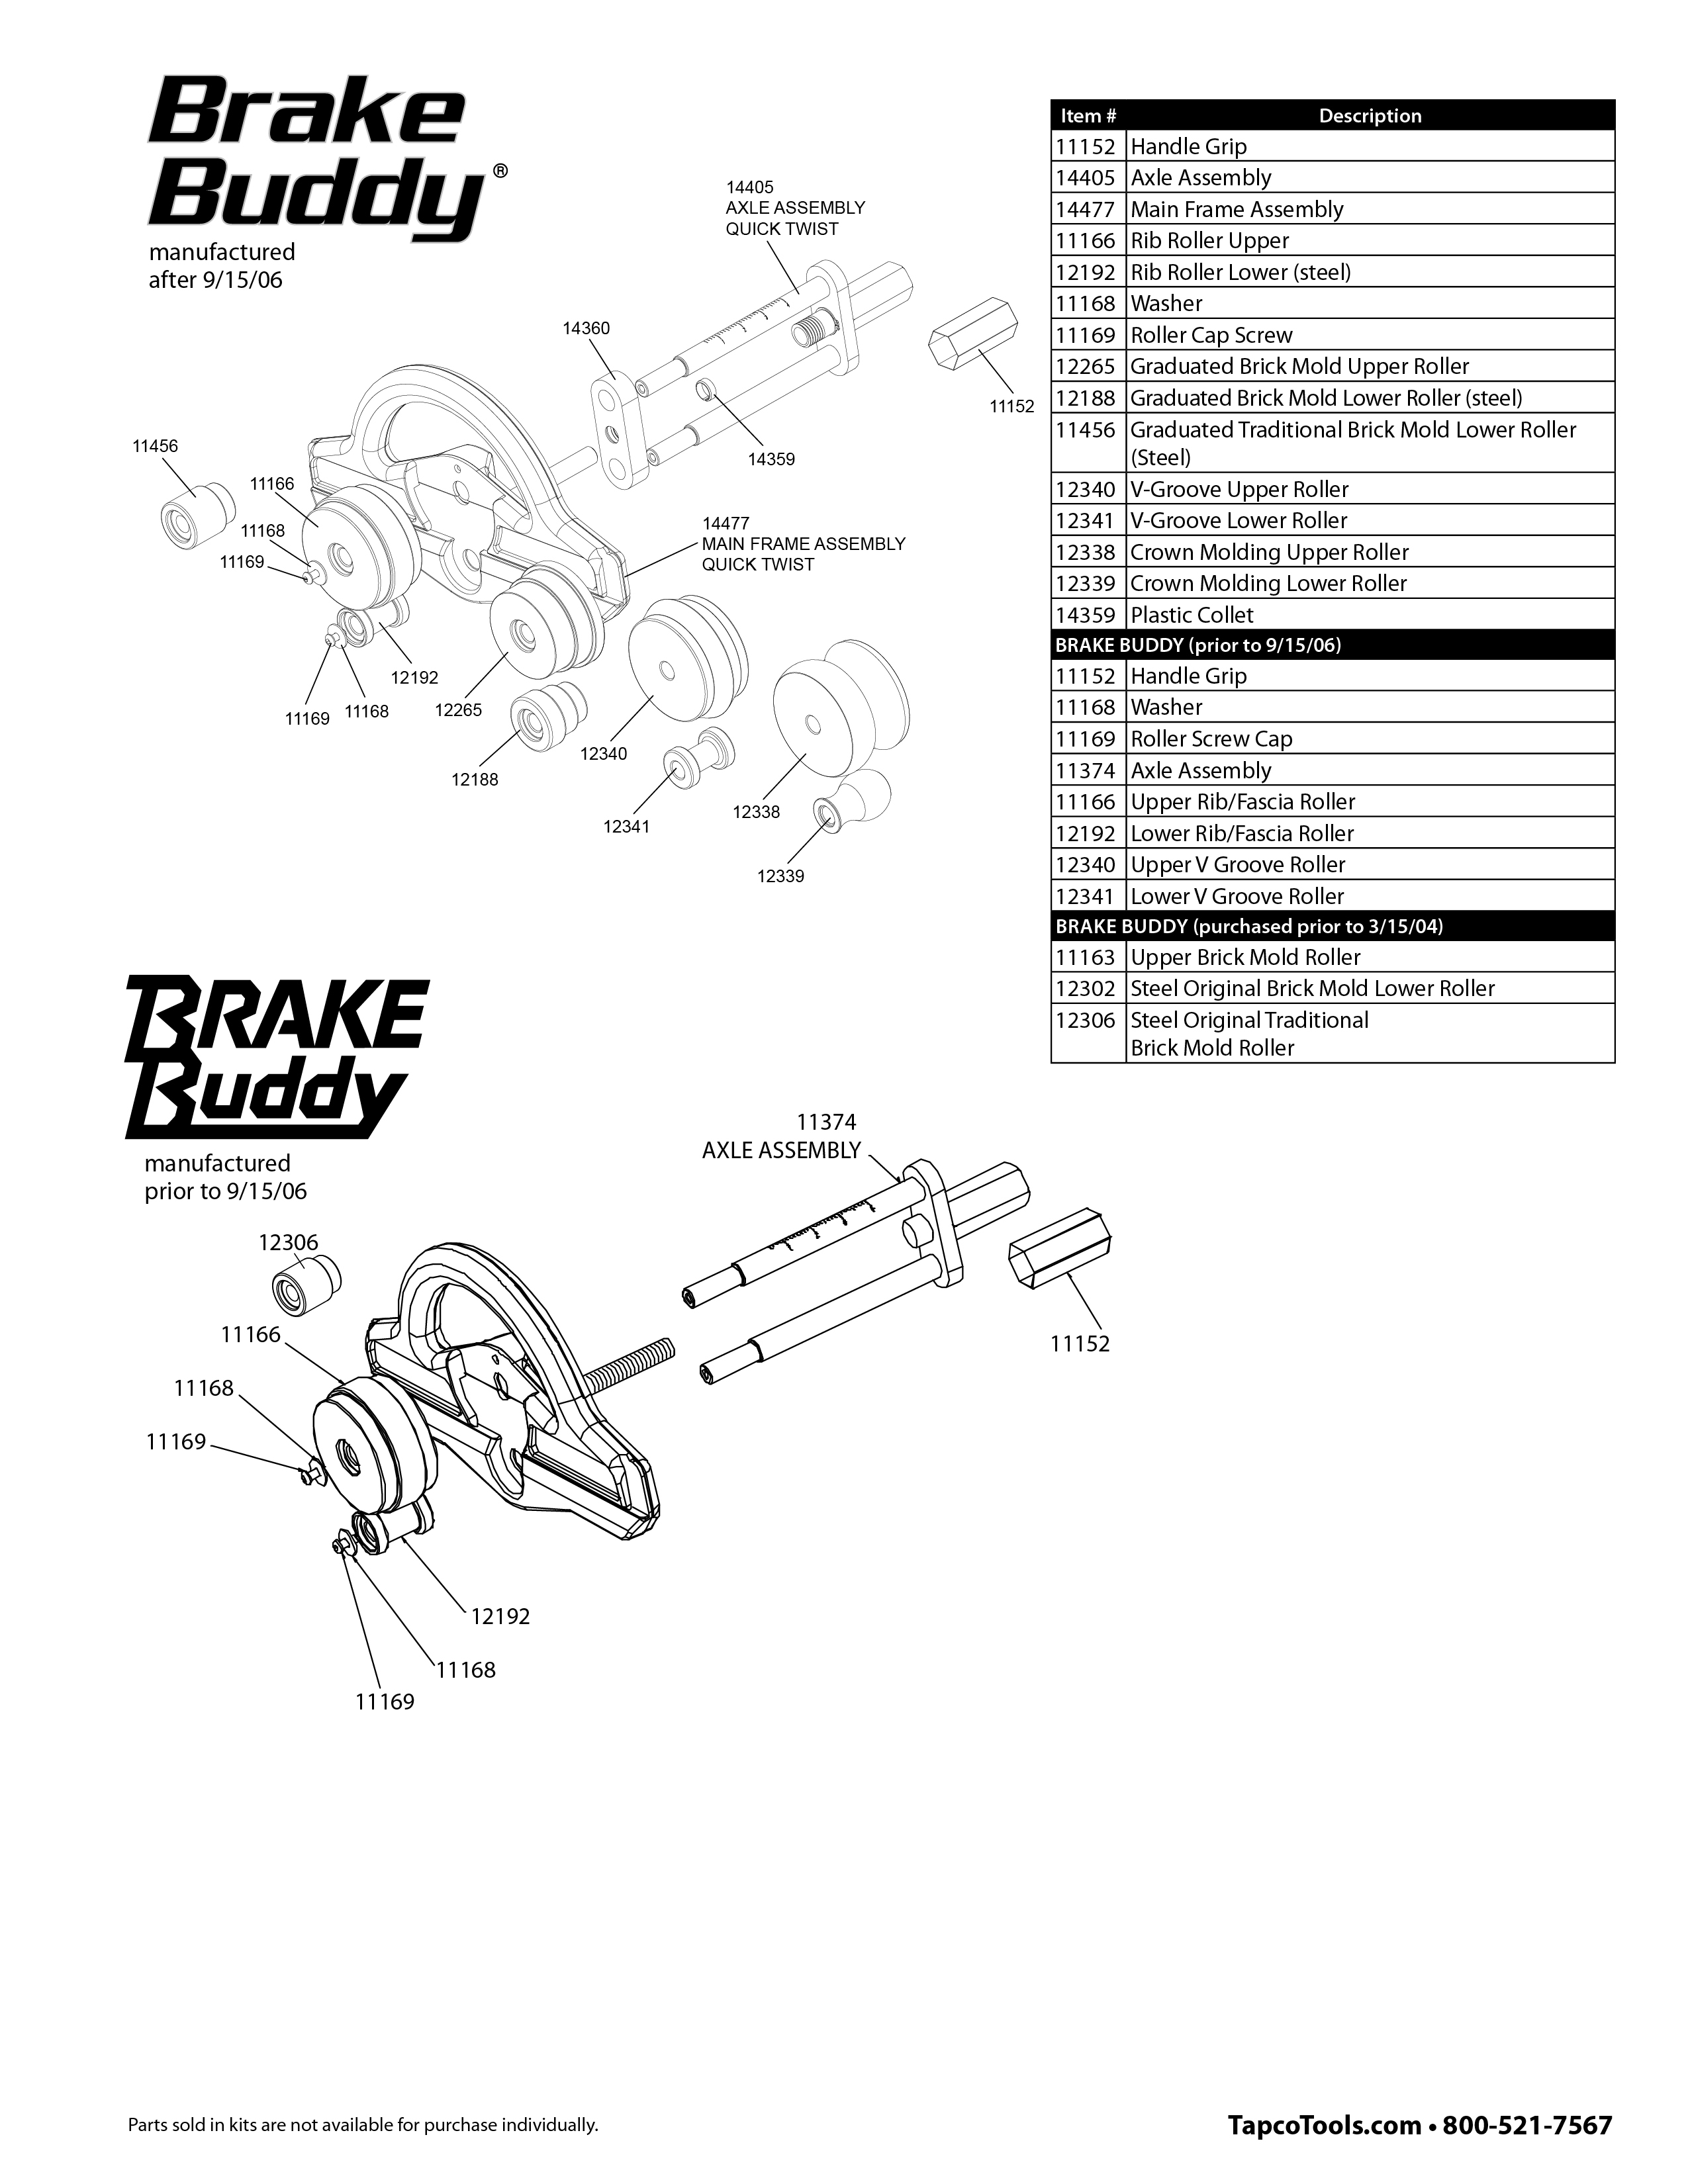 Brake Buddy Repair Parts Pictures To Pin